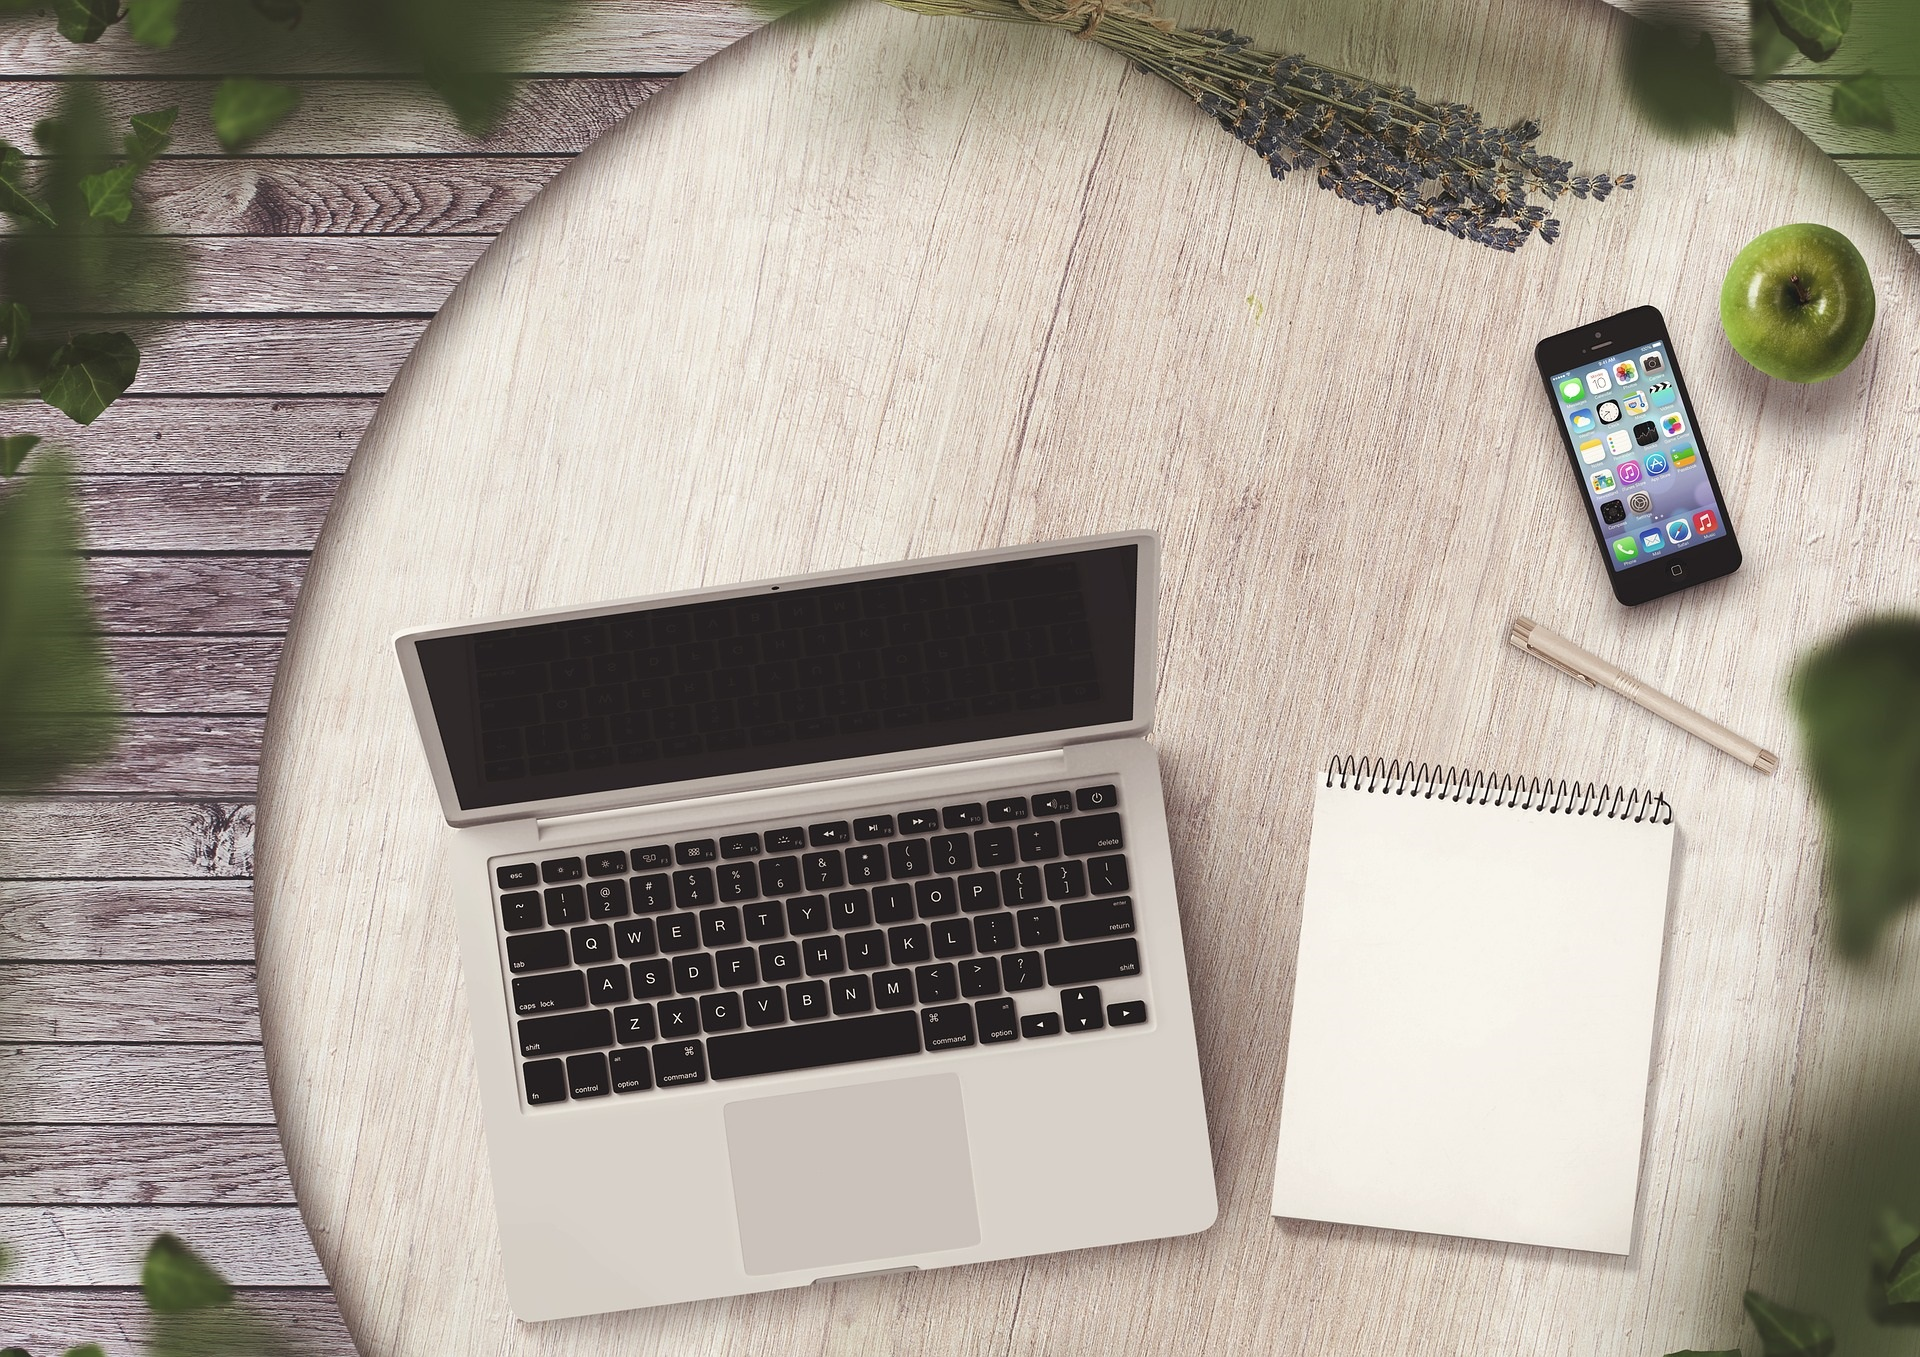 Laptop, note pad and mobile phone on a table